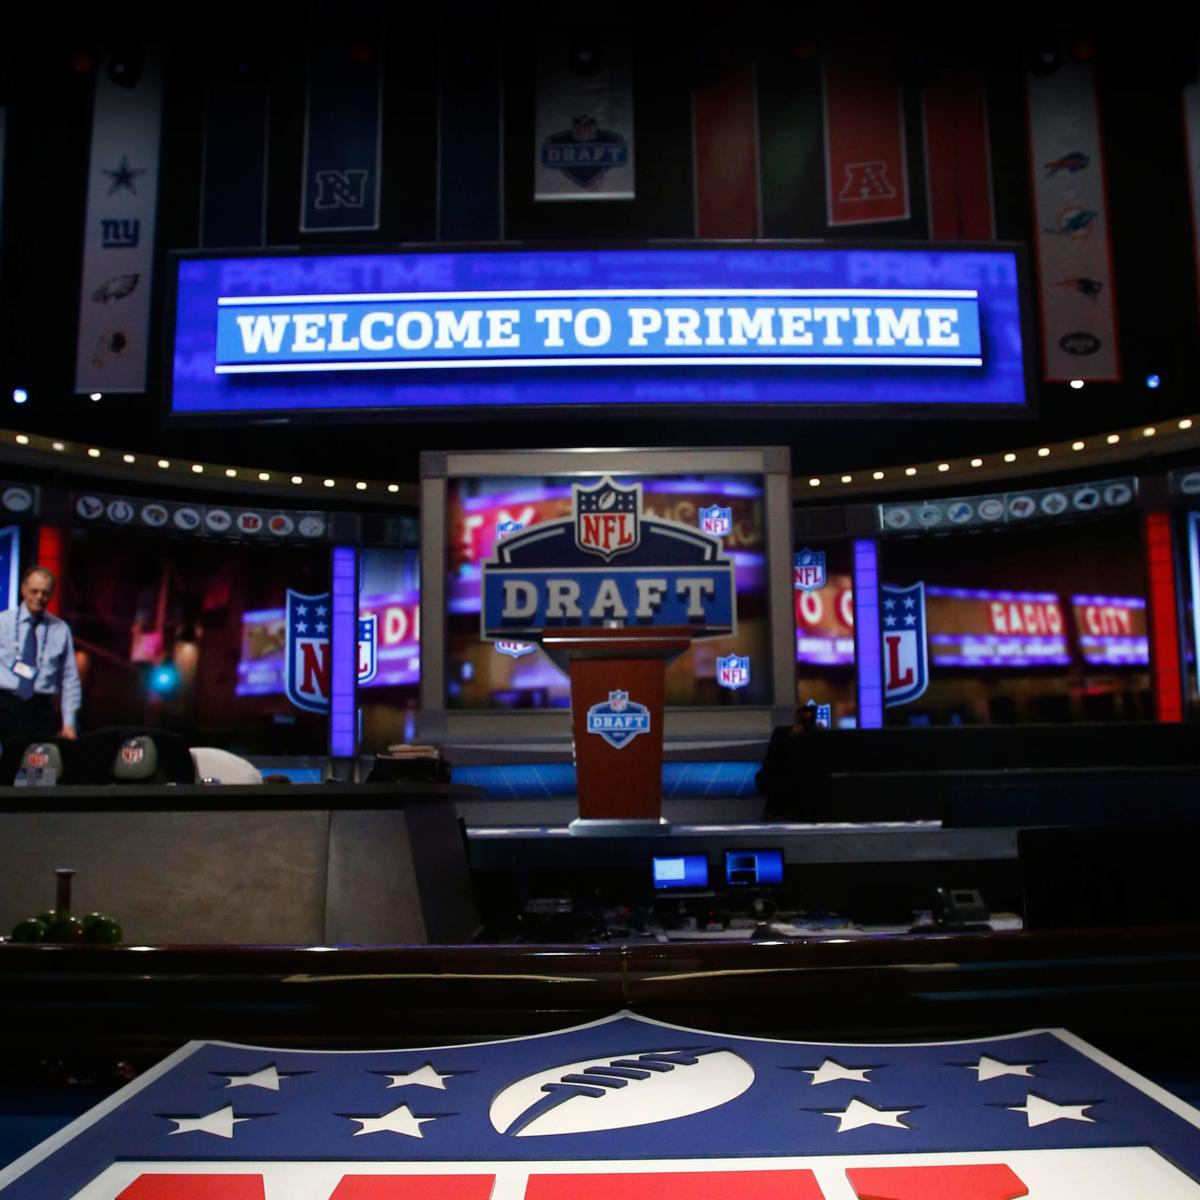 NFL Draft 2013 Results  Live Analysis and Twitter Reaction for Day 1 ... 2d6e5c4e0f4